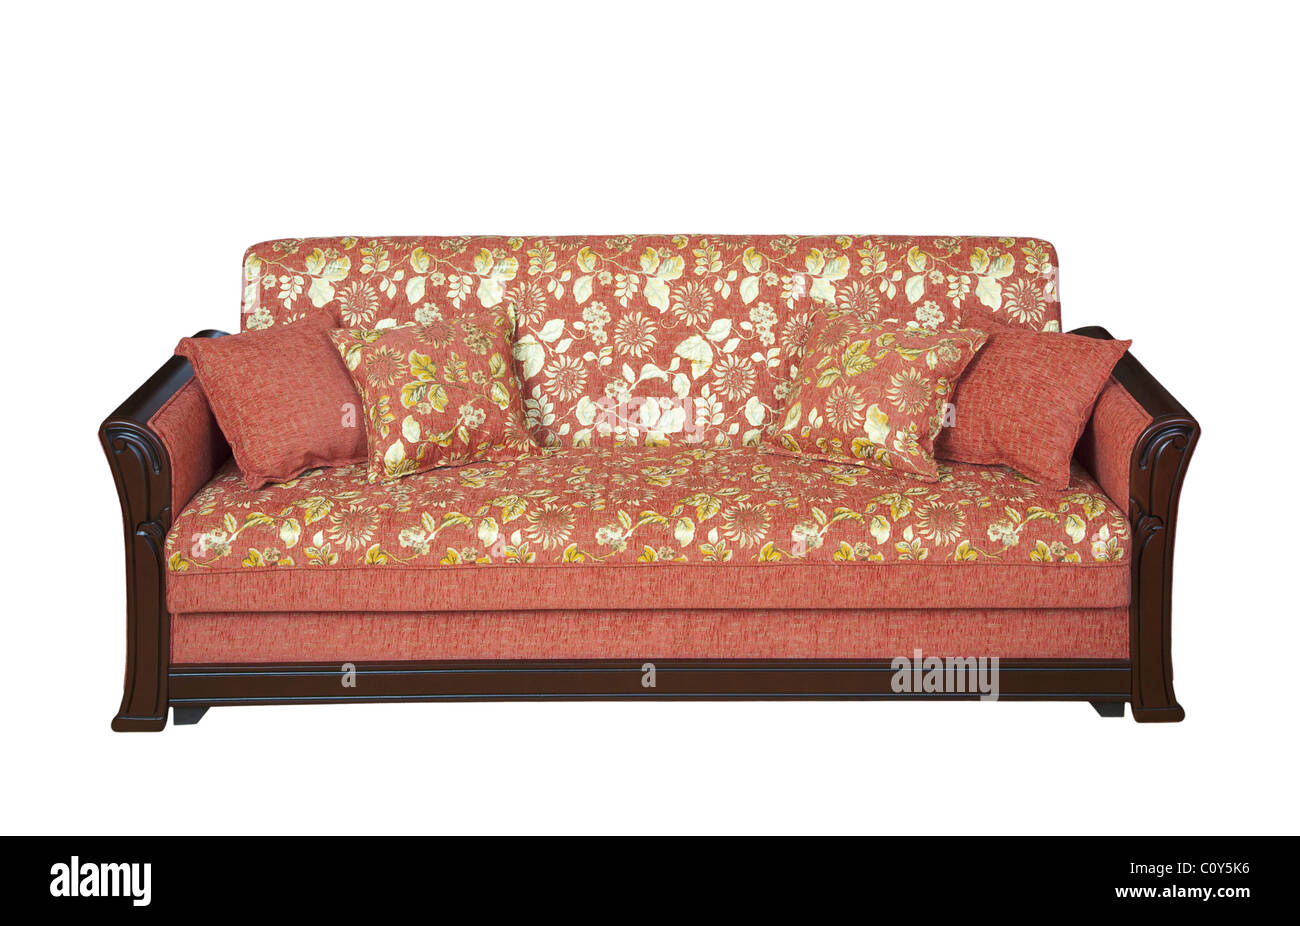 Wooden sofa with floral pattern upholstery - cutout - Stock Image